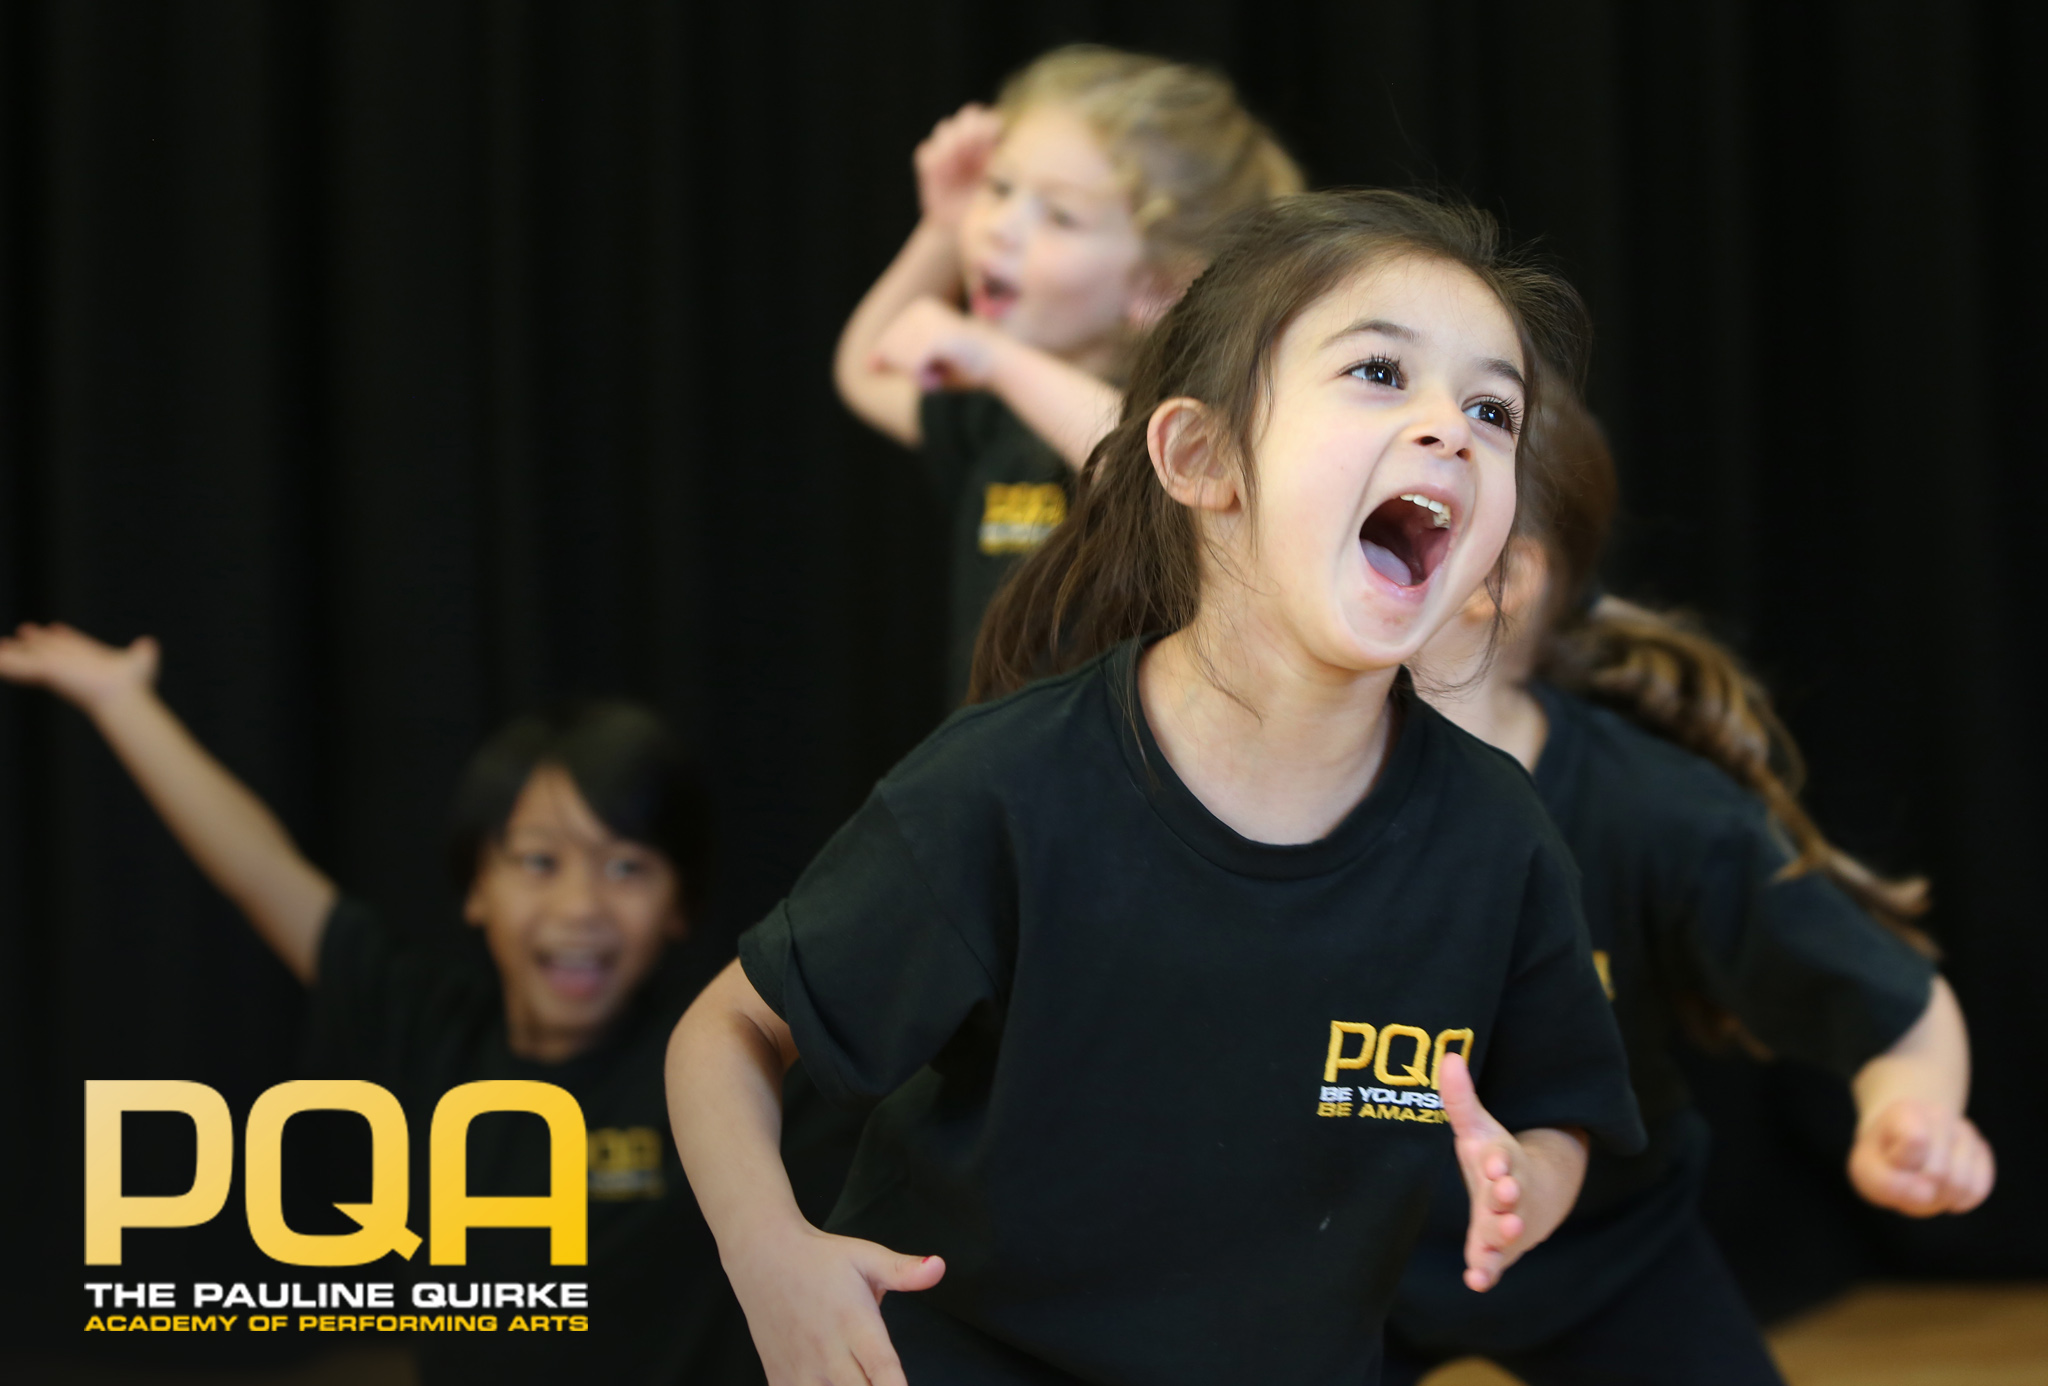 Free Open Day at PQA Bicester